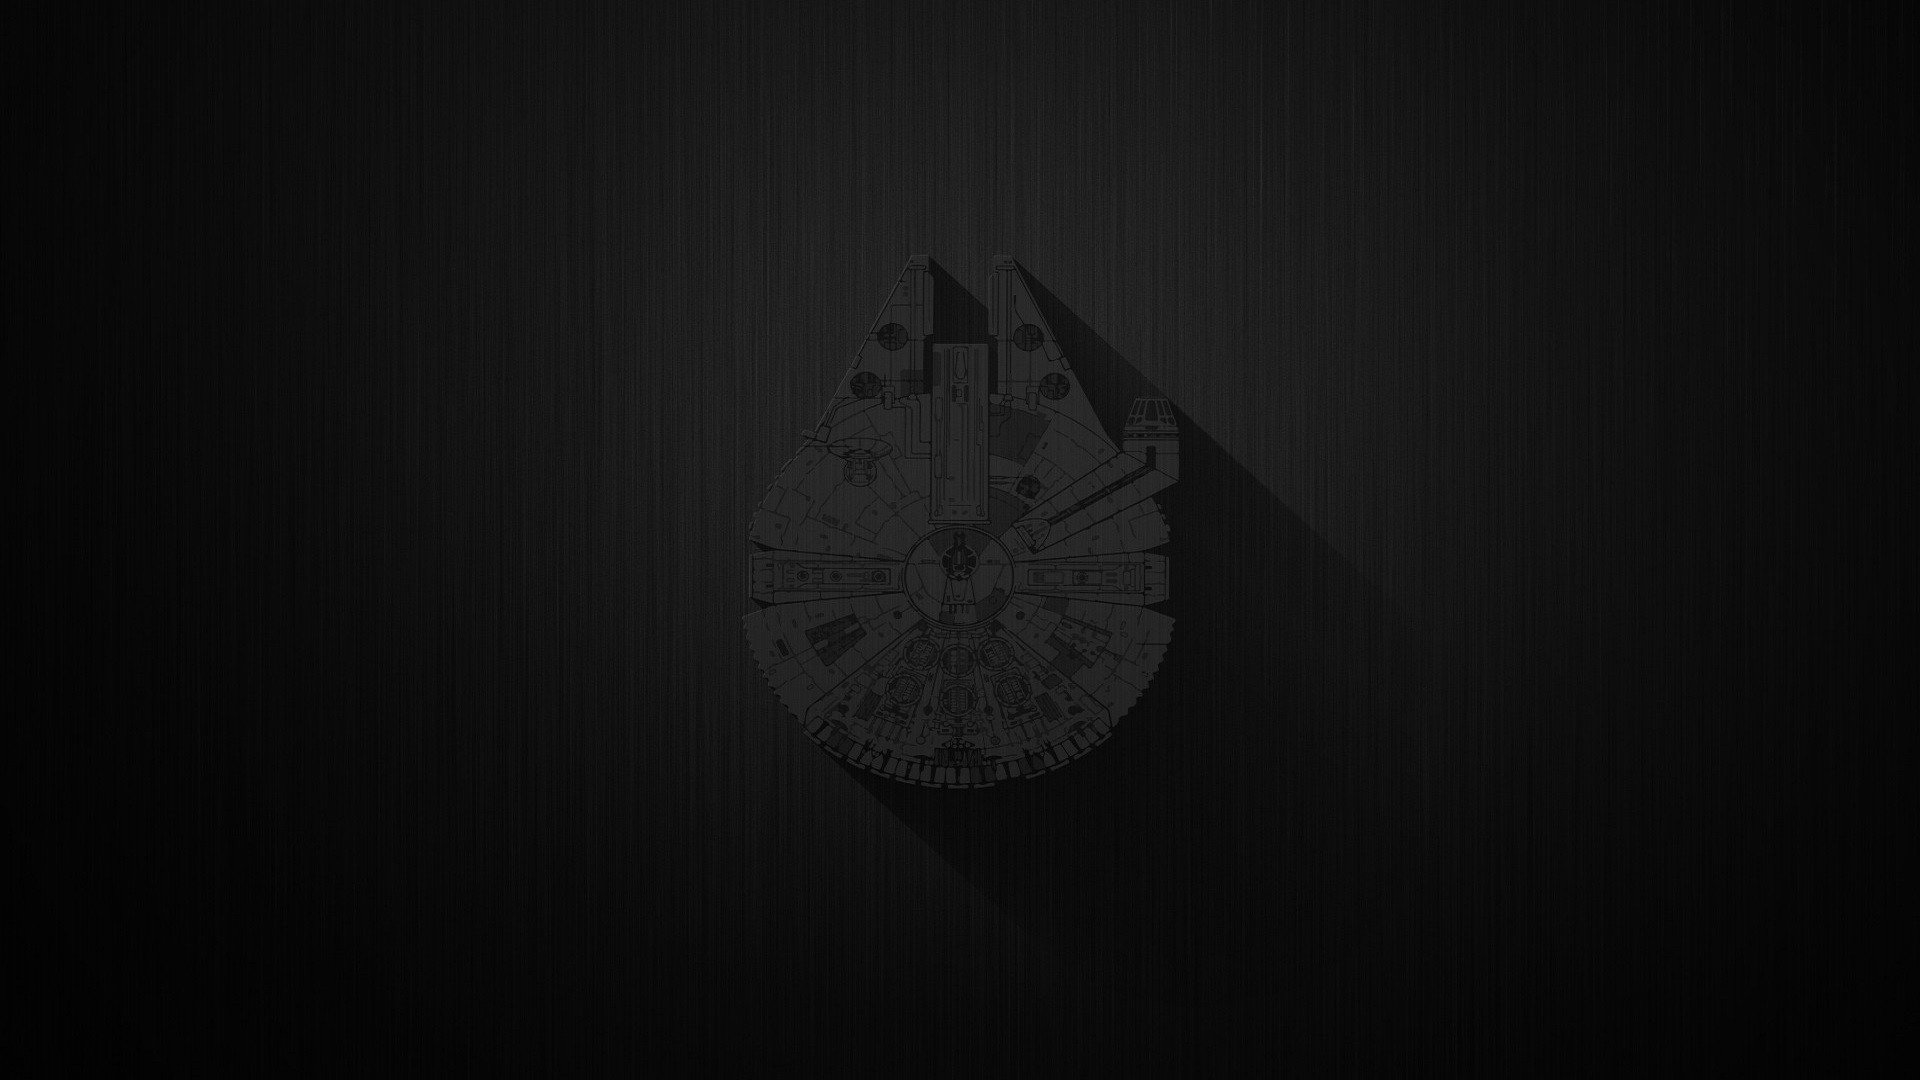 Star Wars Wallpapers 1920x1080 Full Hd 1080p Desktop Backgrounds